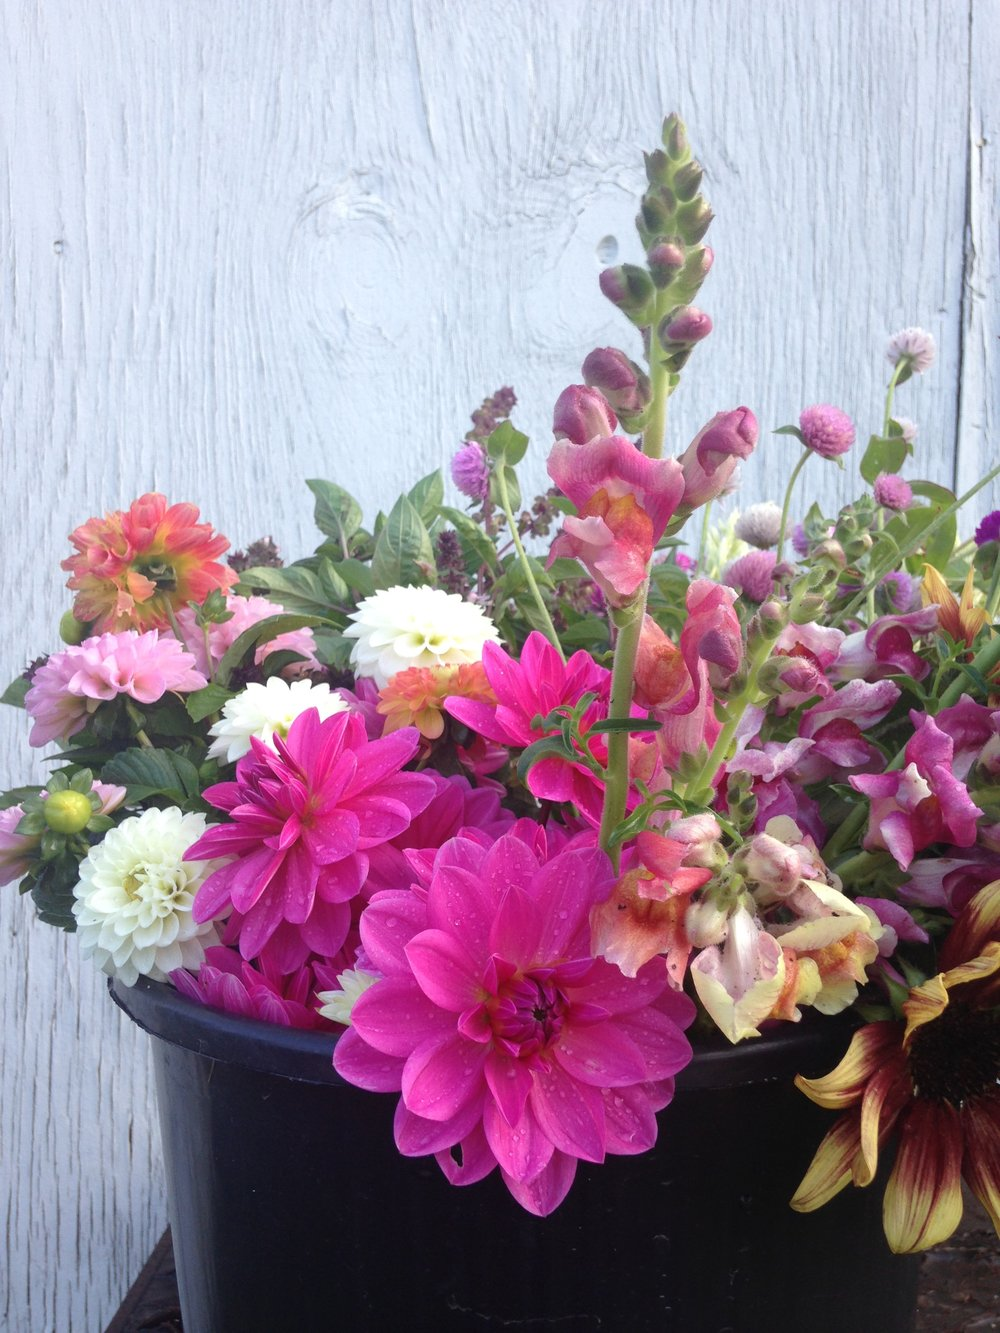 Enjoy local blooms - Find our flowers at local markets or join our flower CSA!